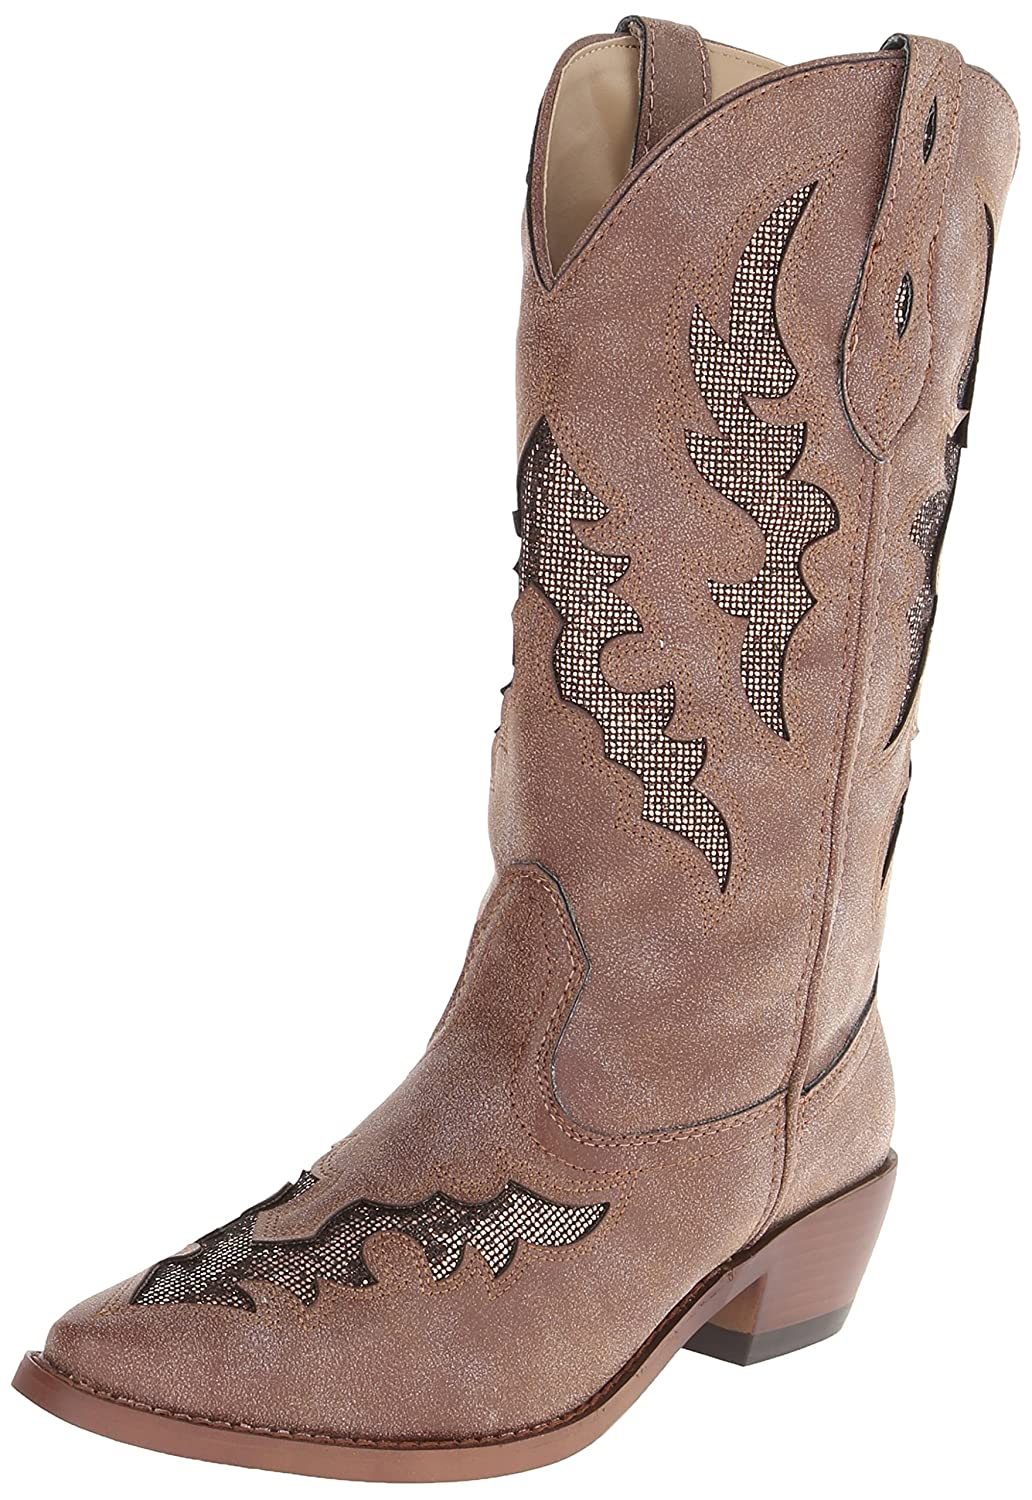 Roper Women's Snippy Glitter Western Boot B00E54N1ZI 7.5 B(M) US|Brown